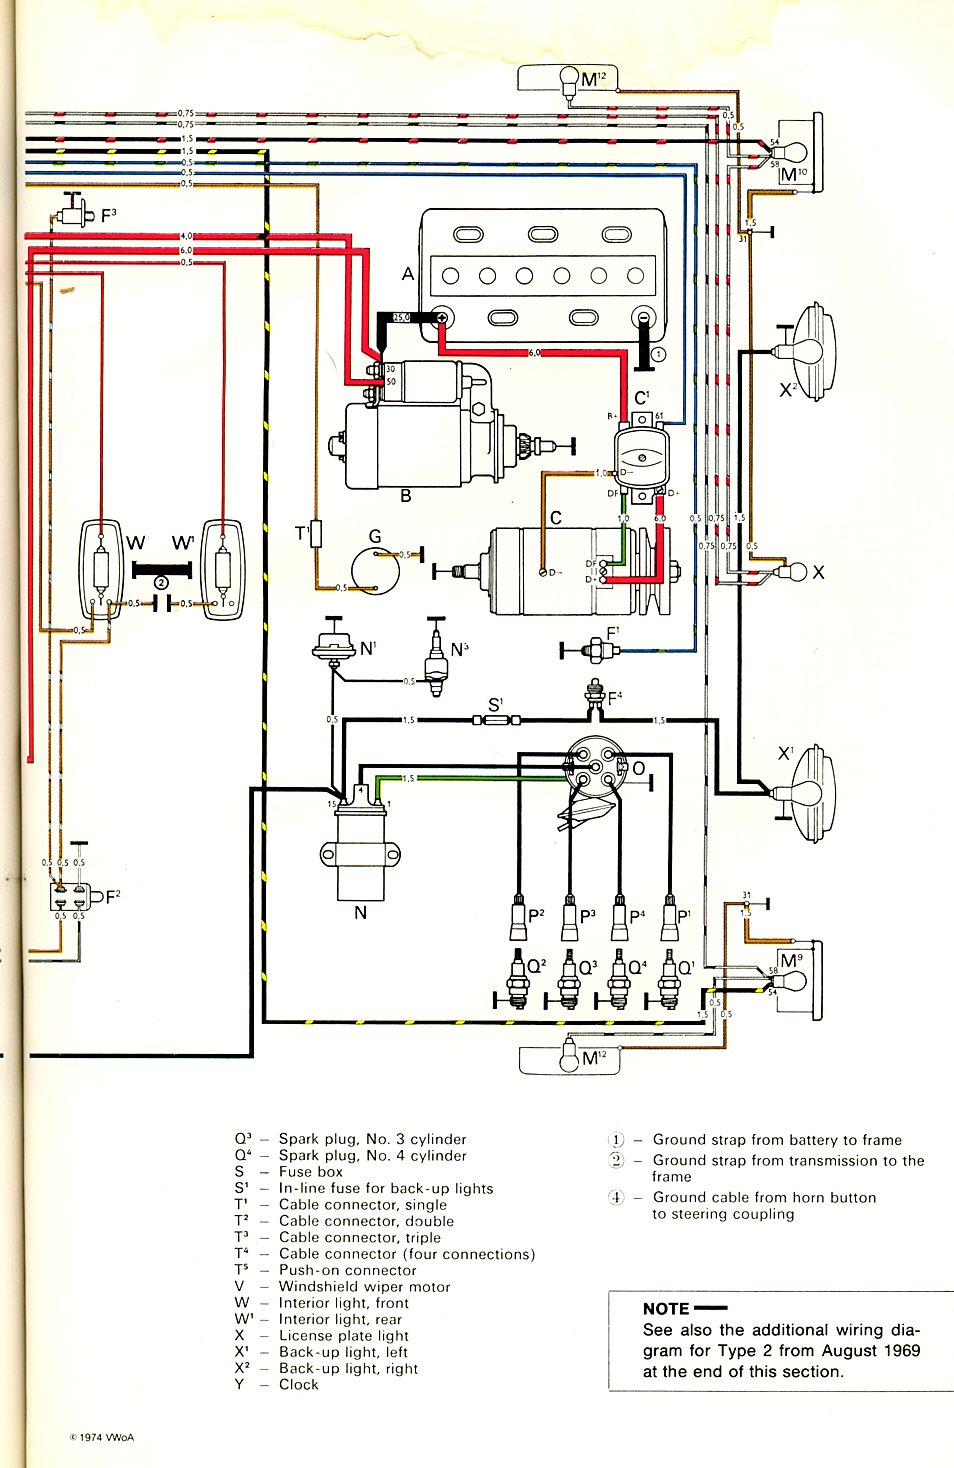 Type 2 Wiring Diagrams 1992 Corvette Windshield Wiper Motor Diagram